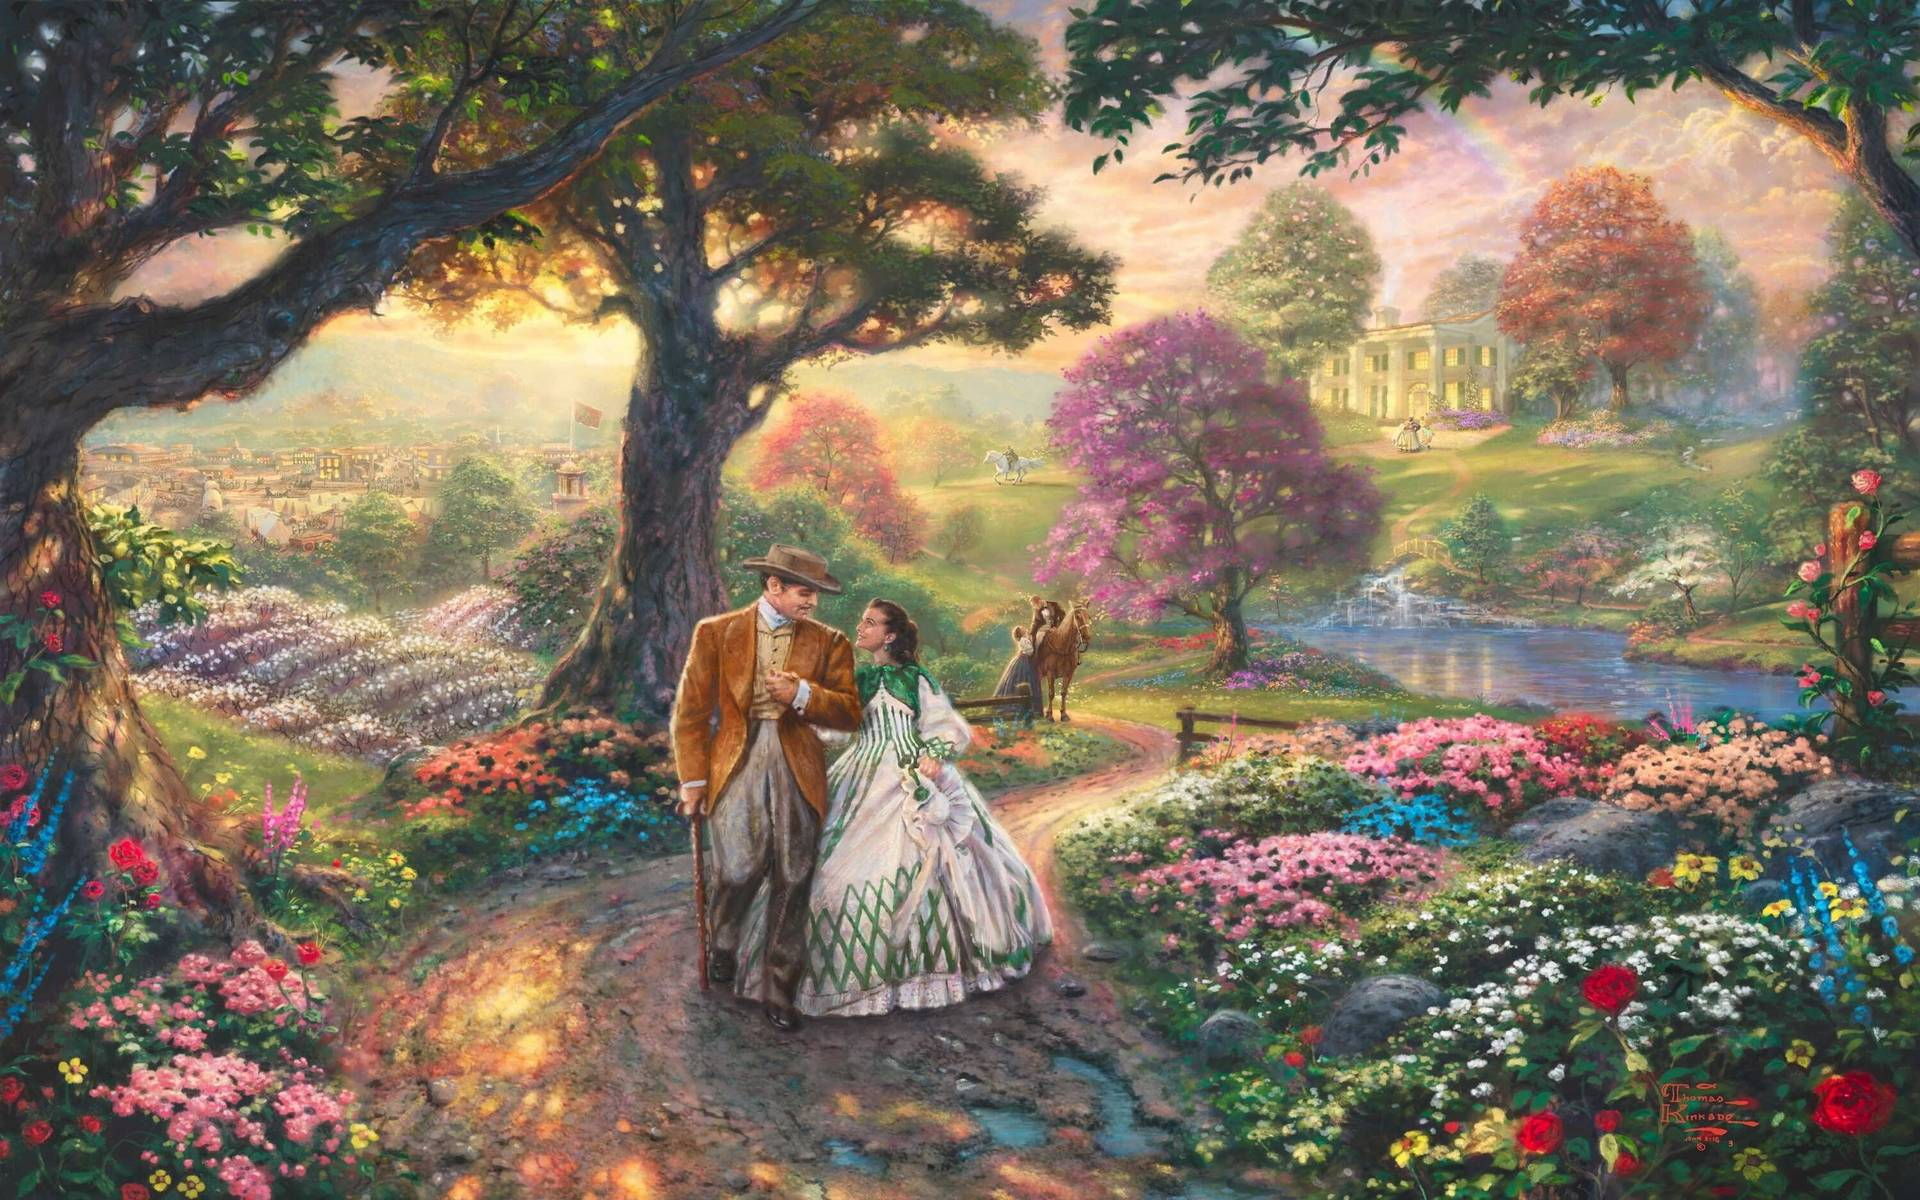 Home Wallpaper Life: Thomas Kinkade Disney Wallpapers